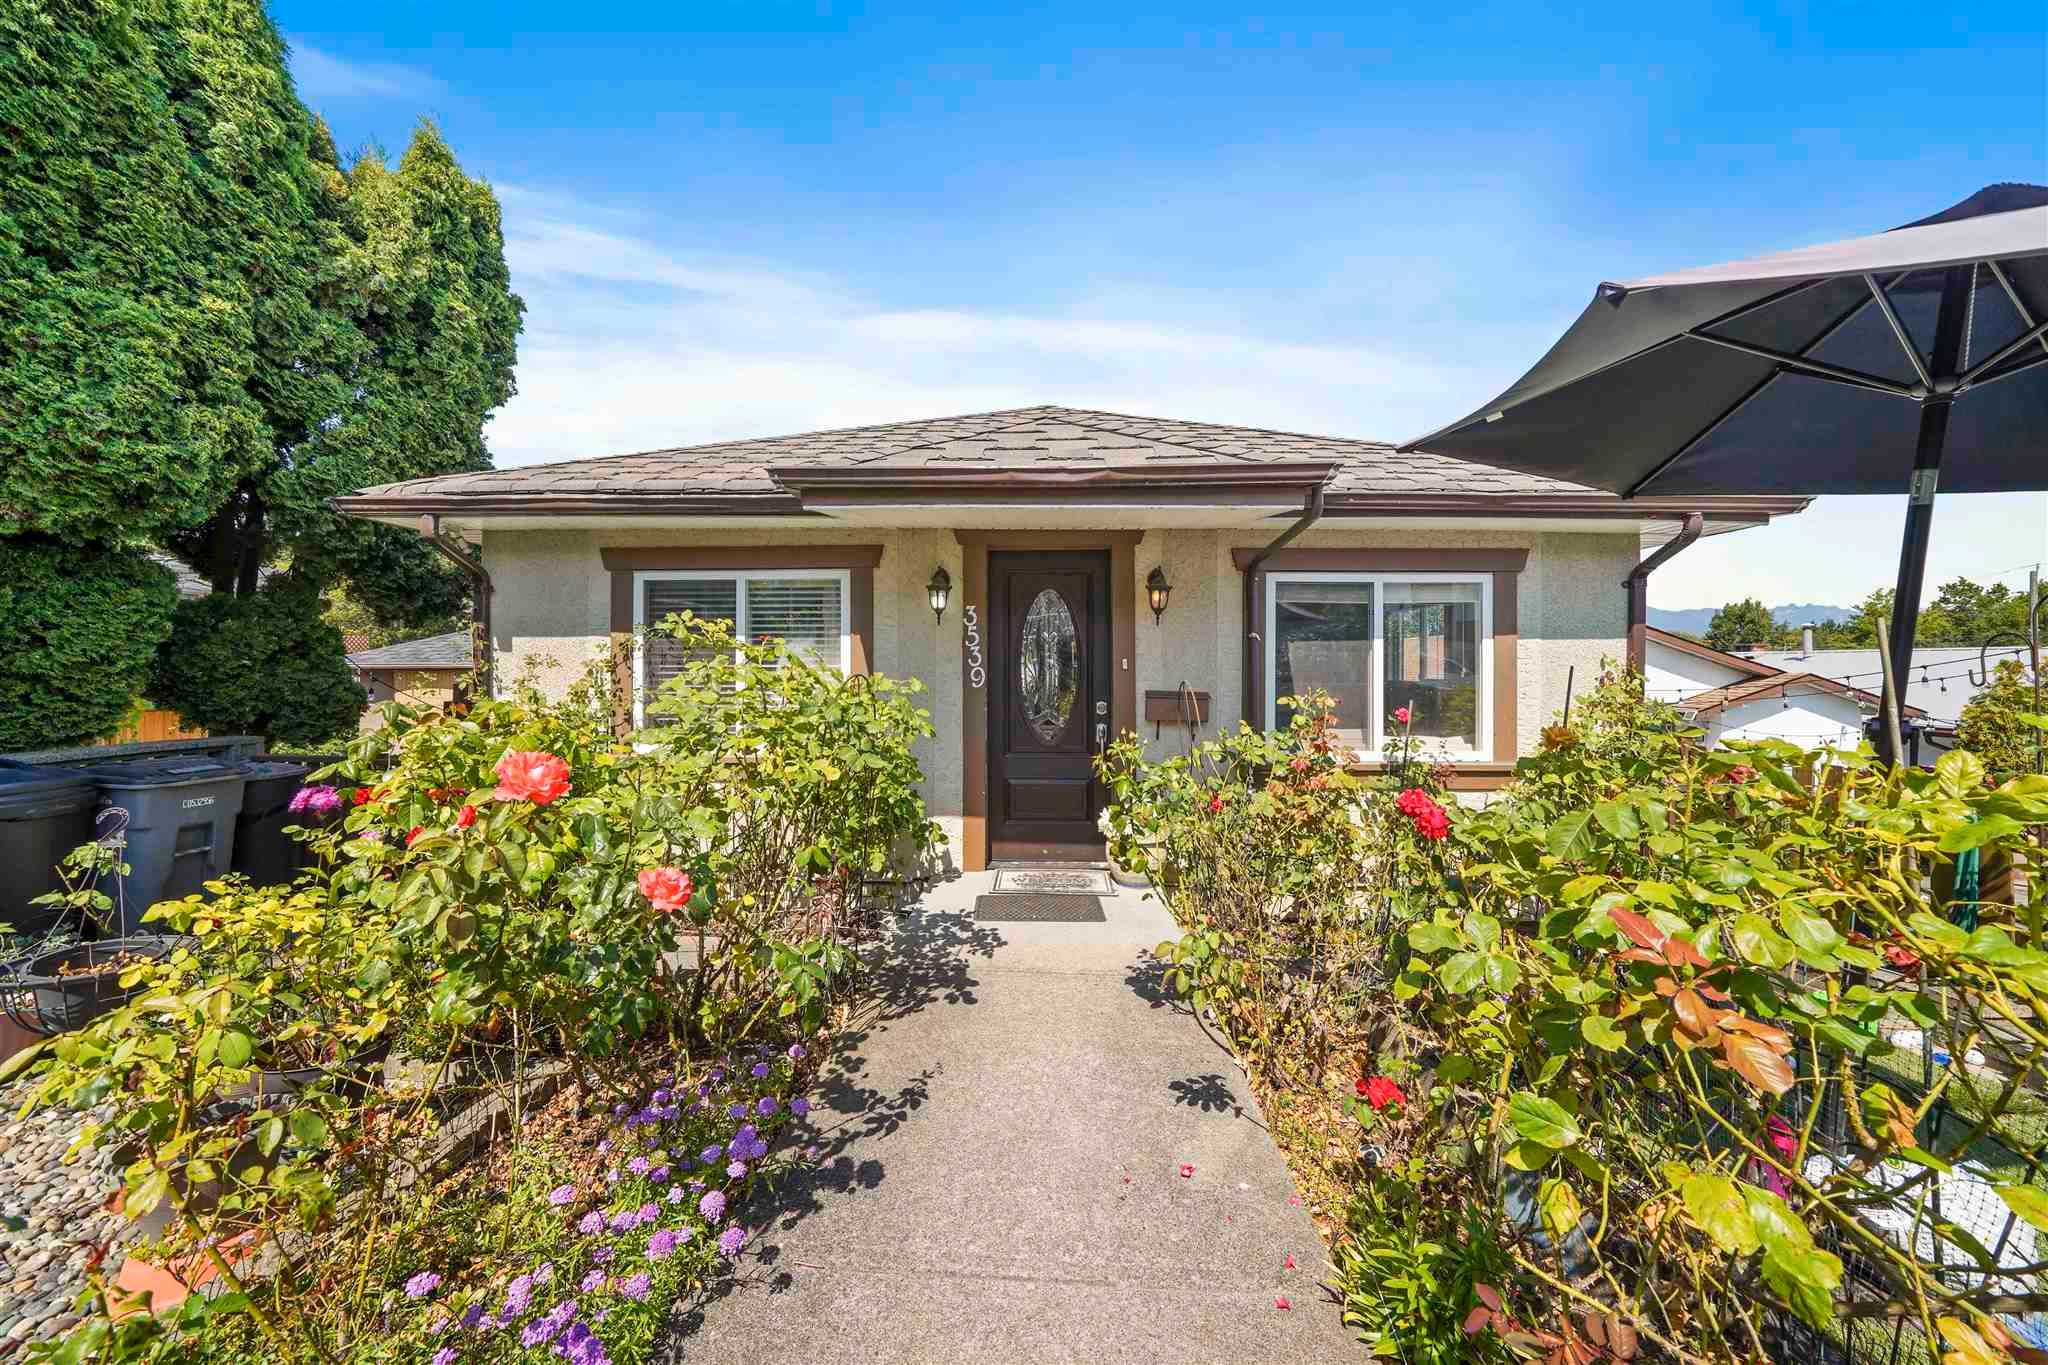 """Main Photo: 3539 COPLEY Street in Vancouver: Grandview Woodland House for sale in """"Trout Lake - Grandview Woodland"""" (Vancouver East)  : MLS®# R2600796"""